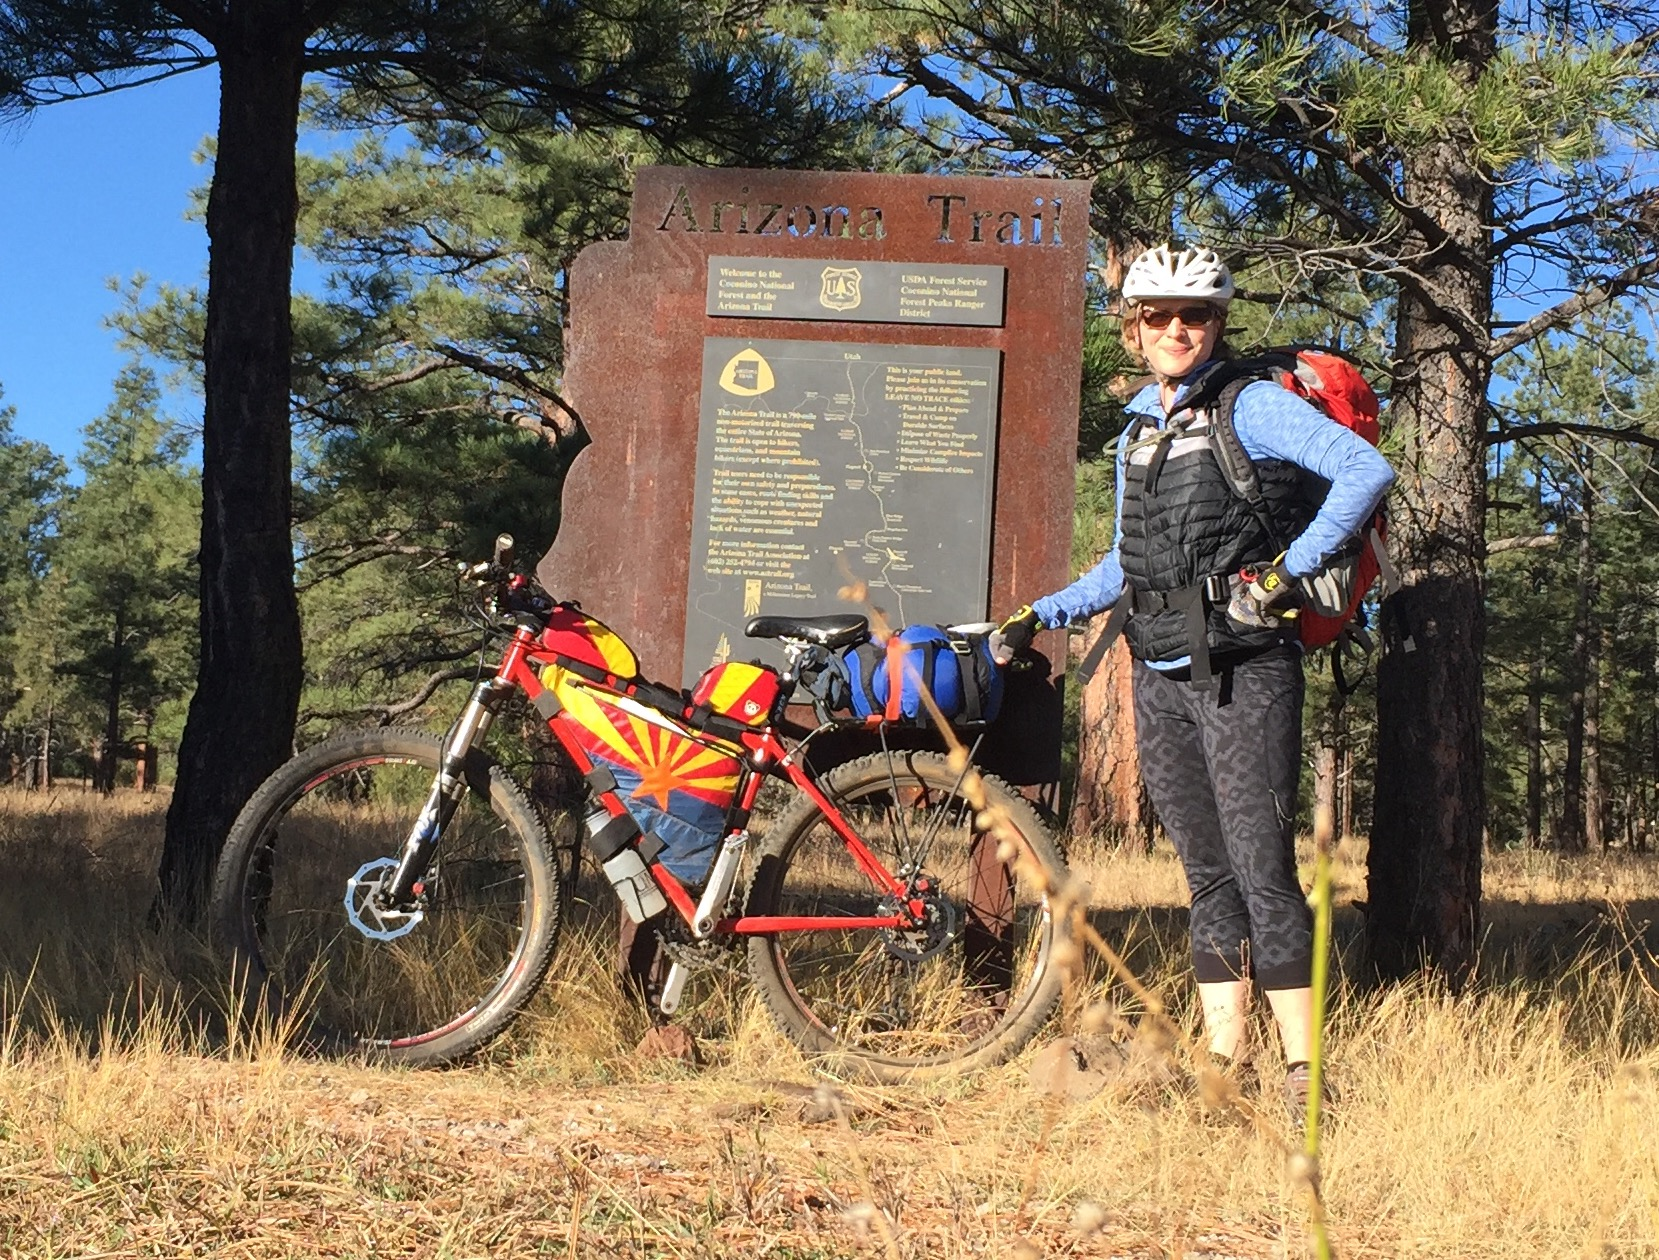 Getting ready to launch! Marshall Lake to Gooseberry Springs of the Arizona Trail!